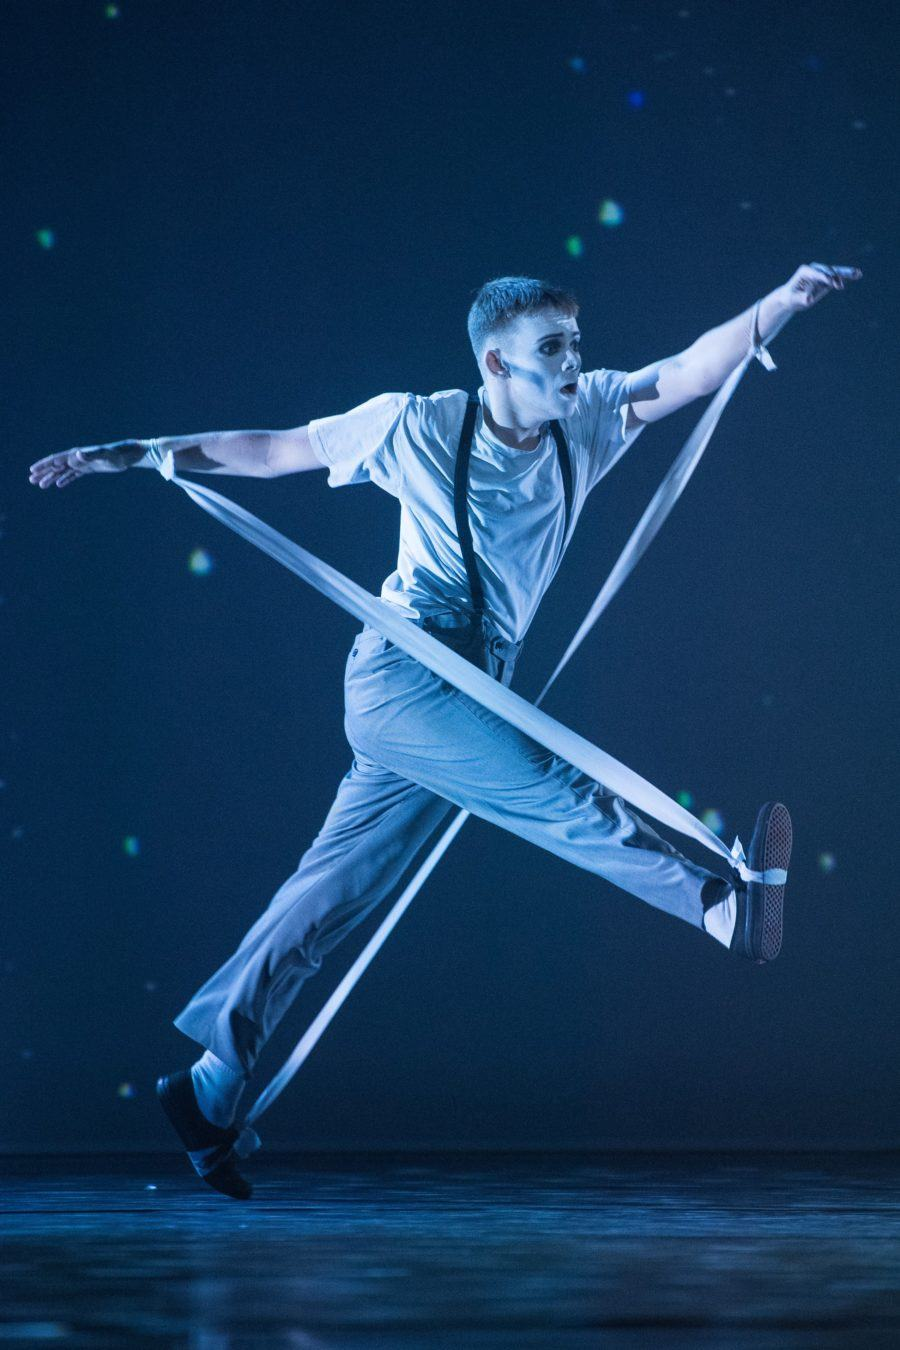 Max Revell performs in the Grand Final of BBC Young Dancer 2019